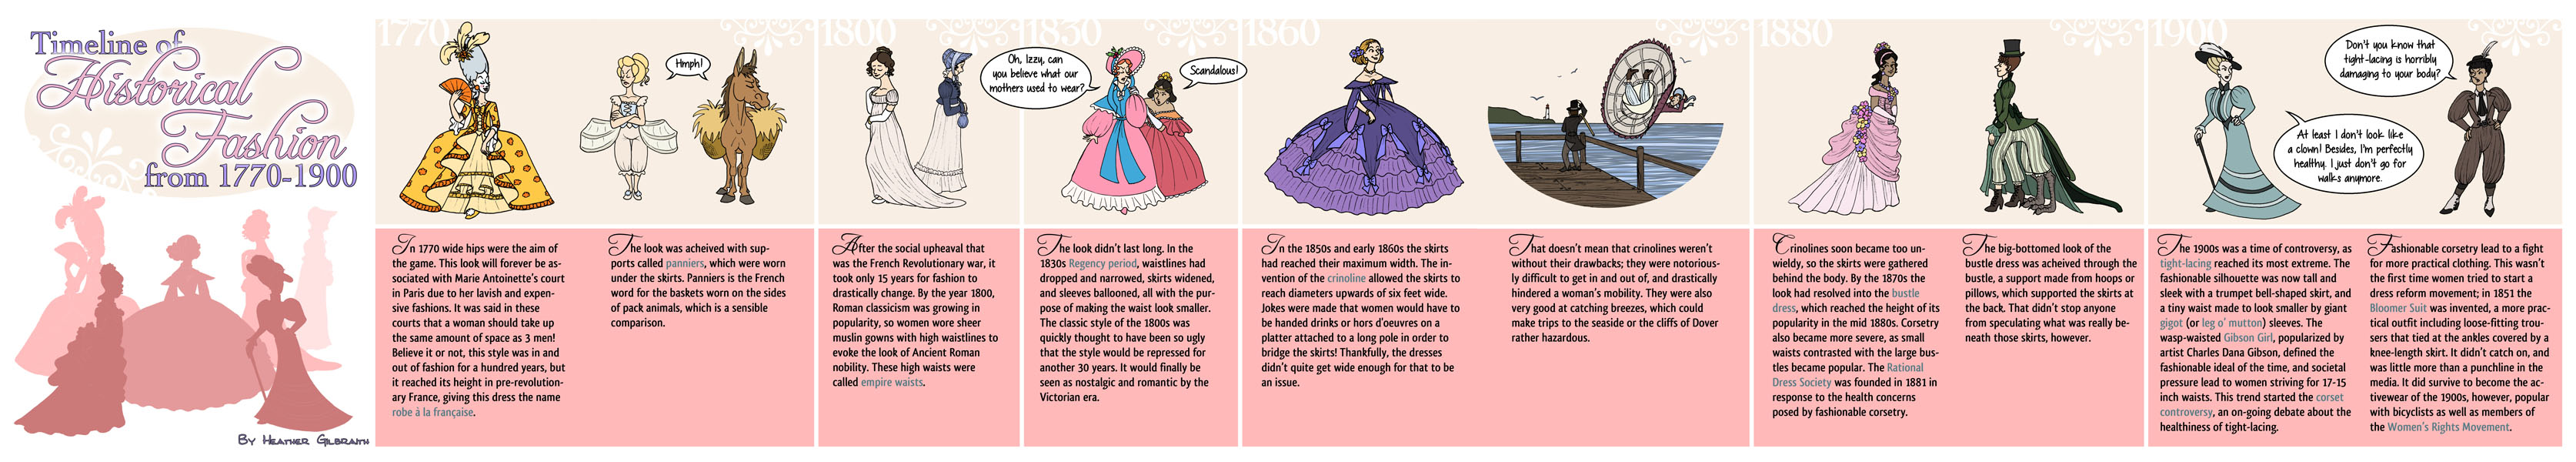 Timeline of Historical Fashion 1770 - 1900 by rheall on DeviantArt